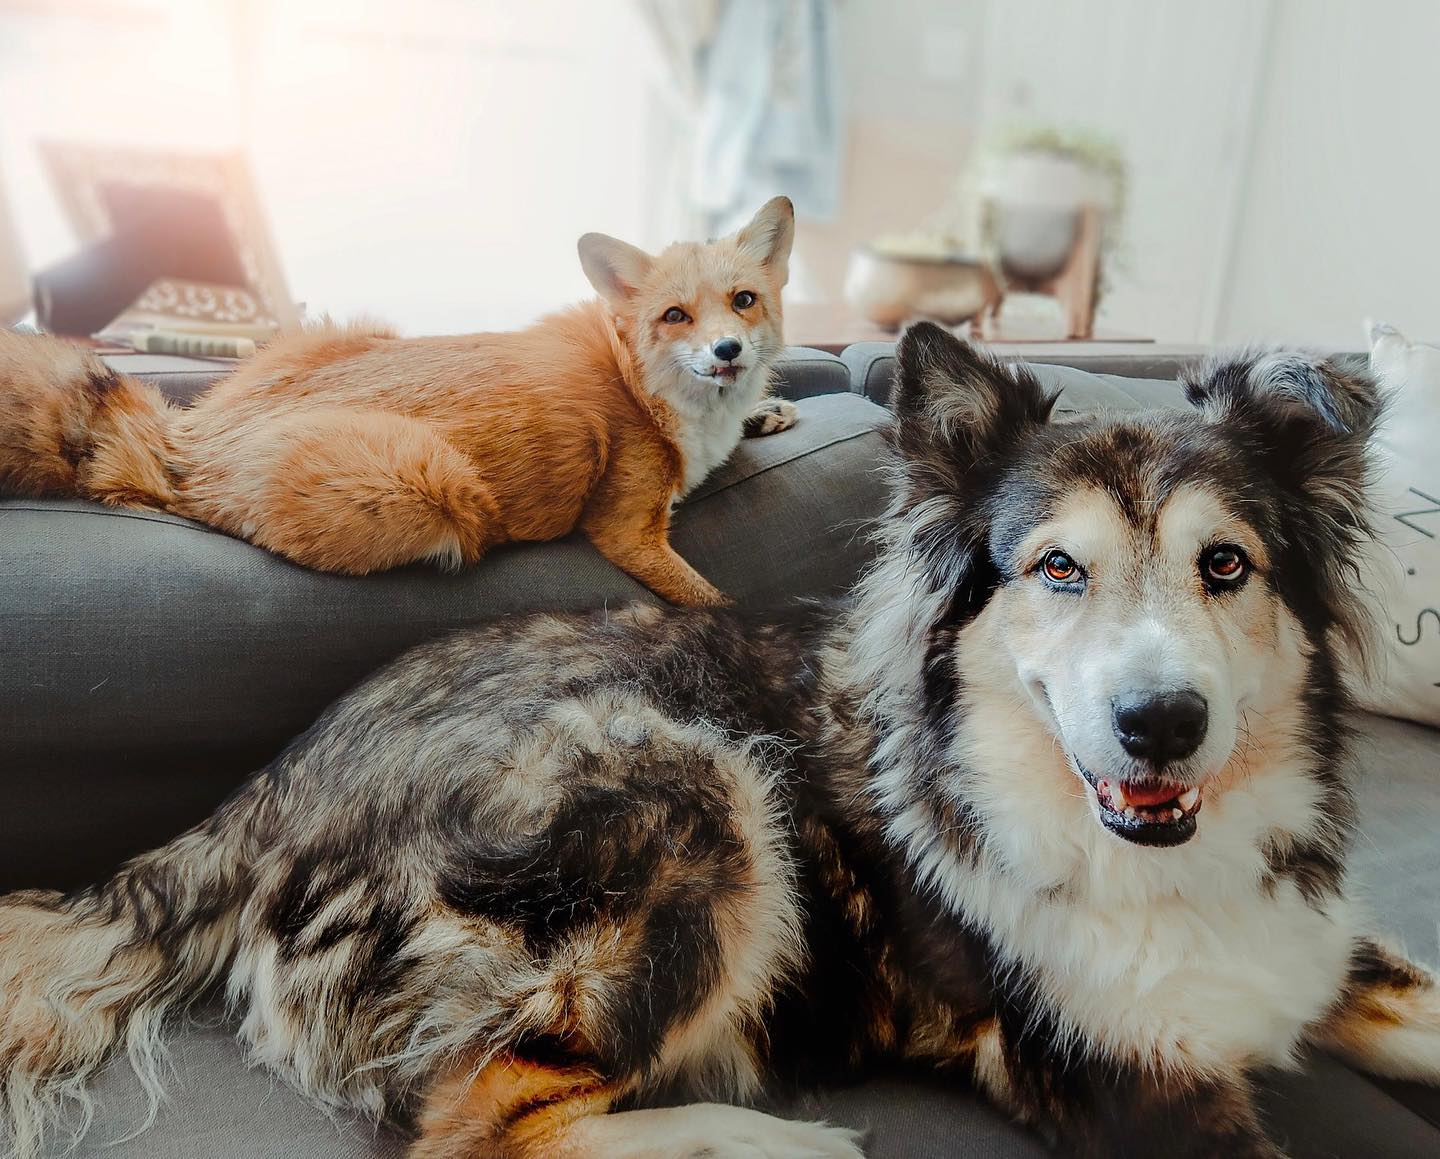 Orange Fox and Black and Brown Dog Smiling On the Couch